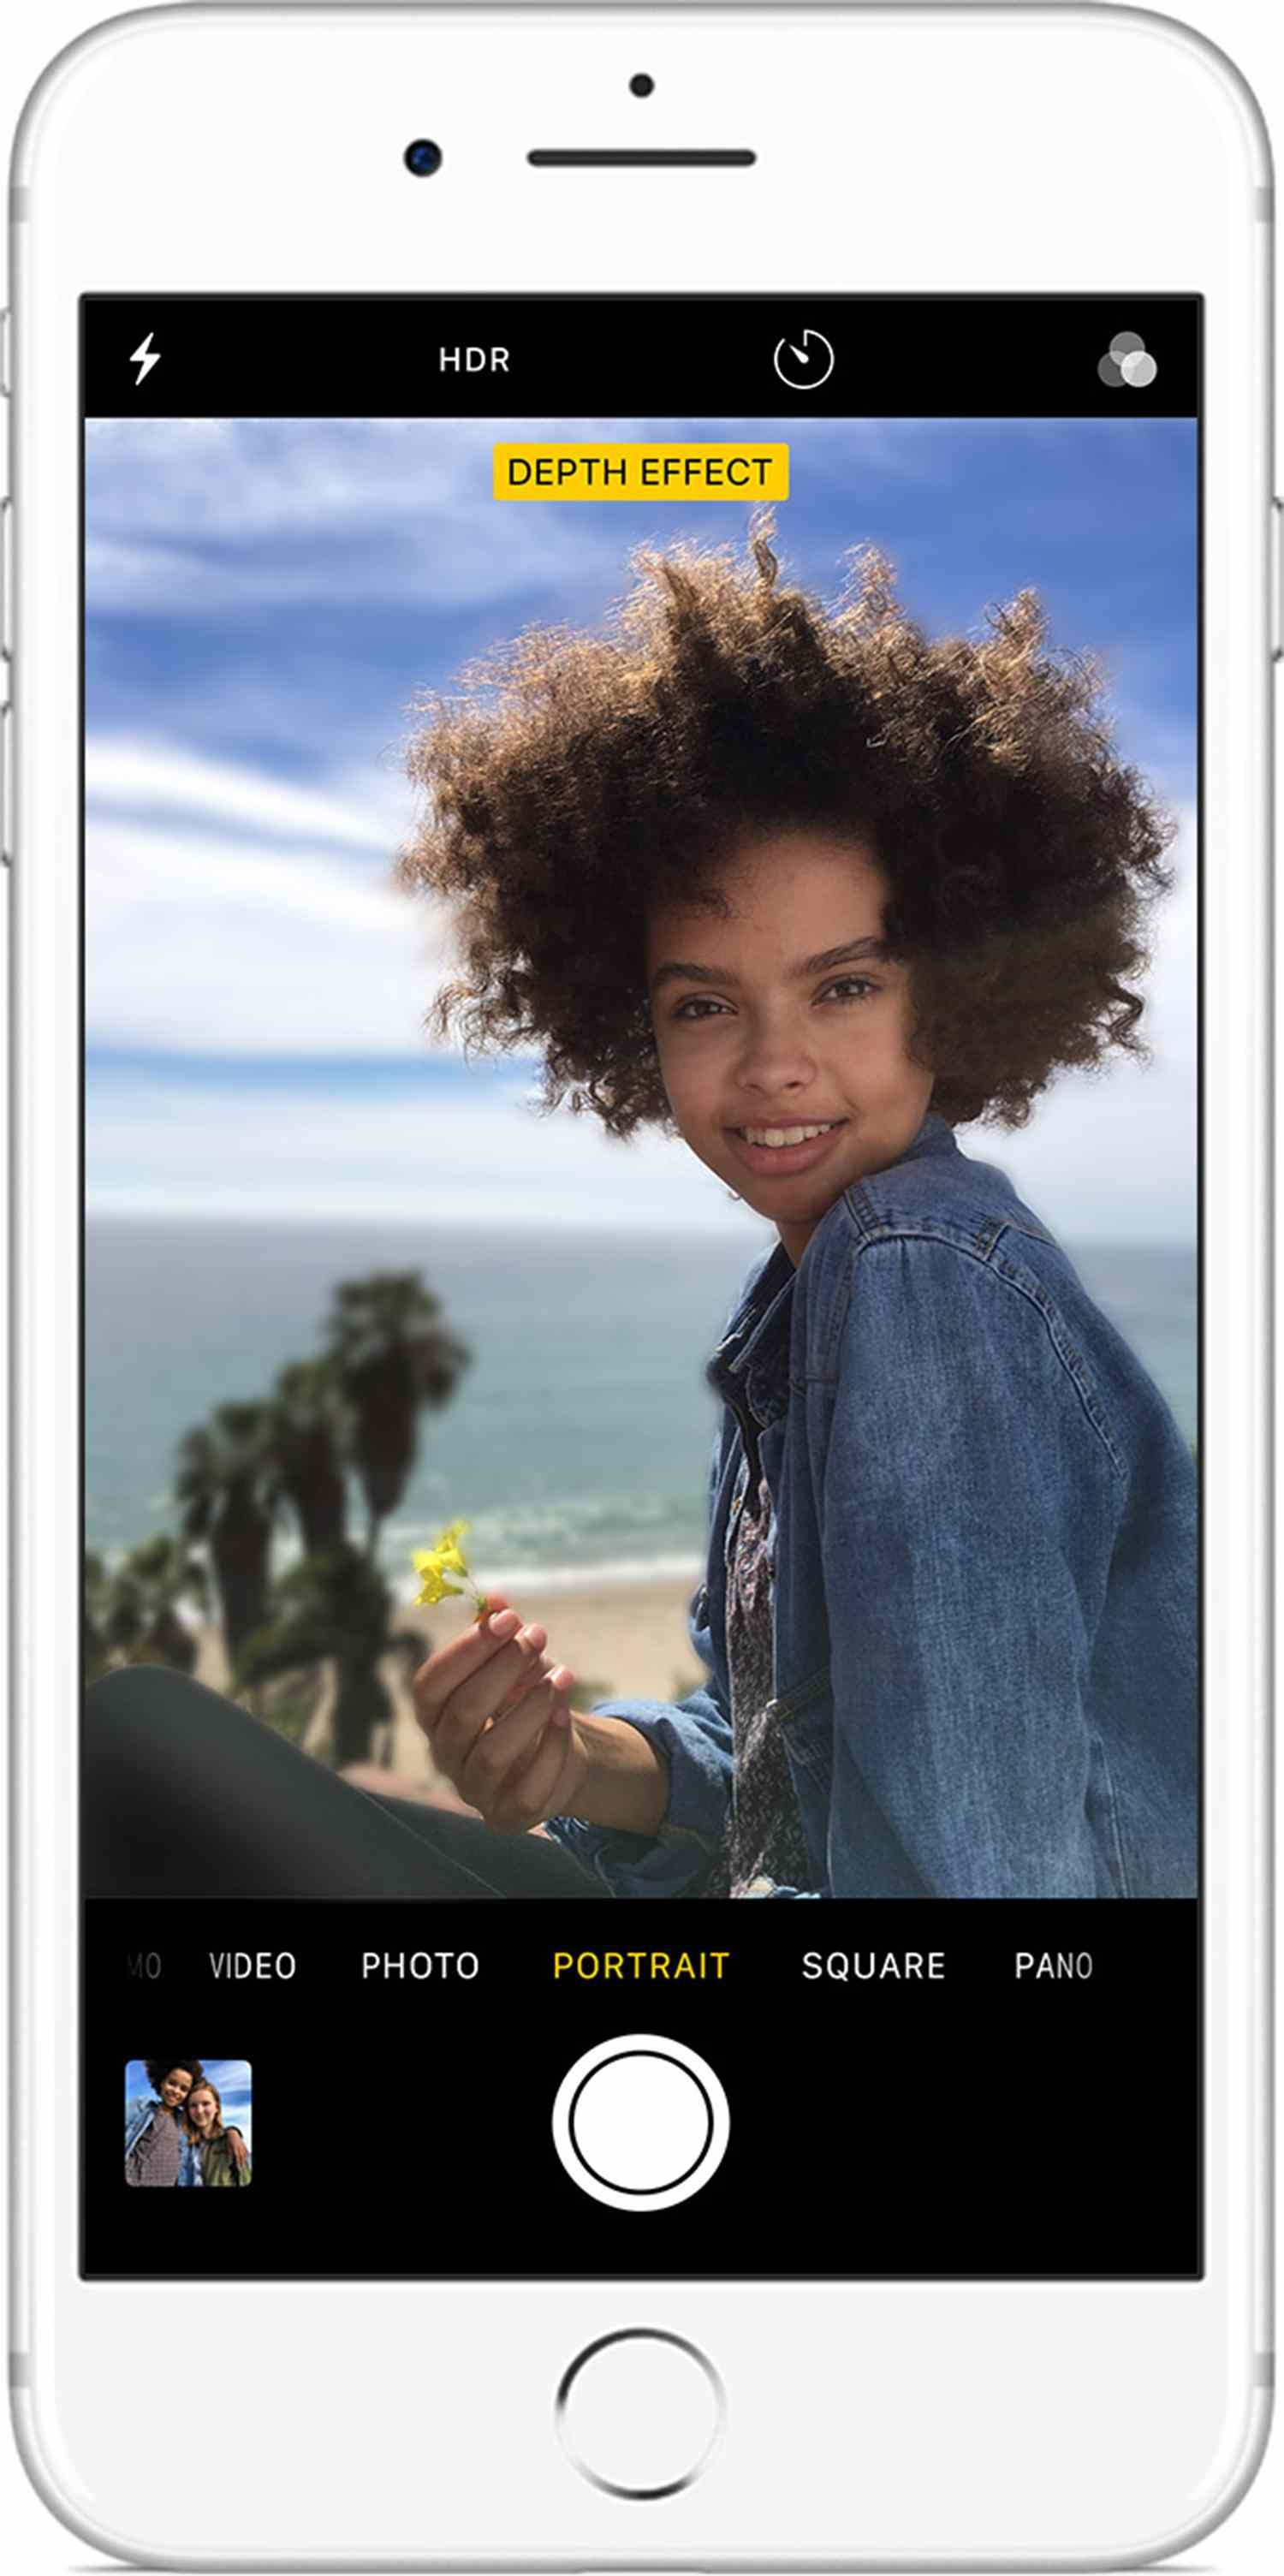 How To Get The Portrait Mode On Iphone 7